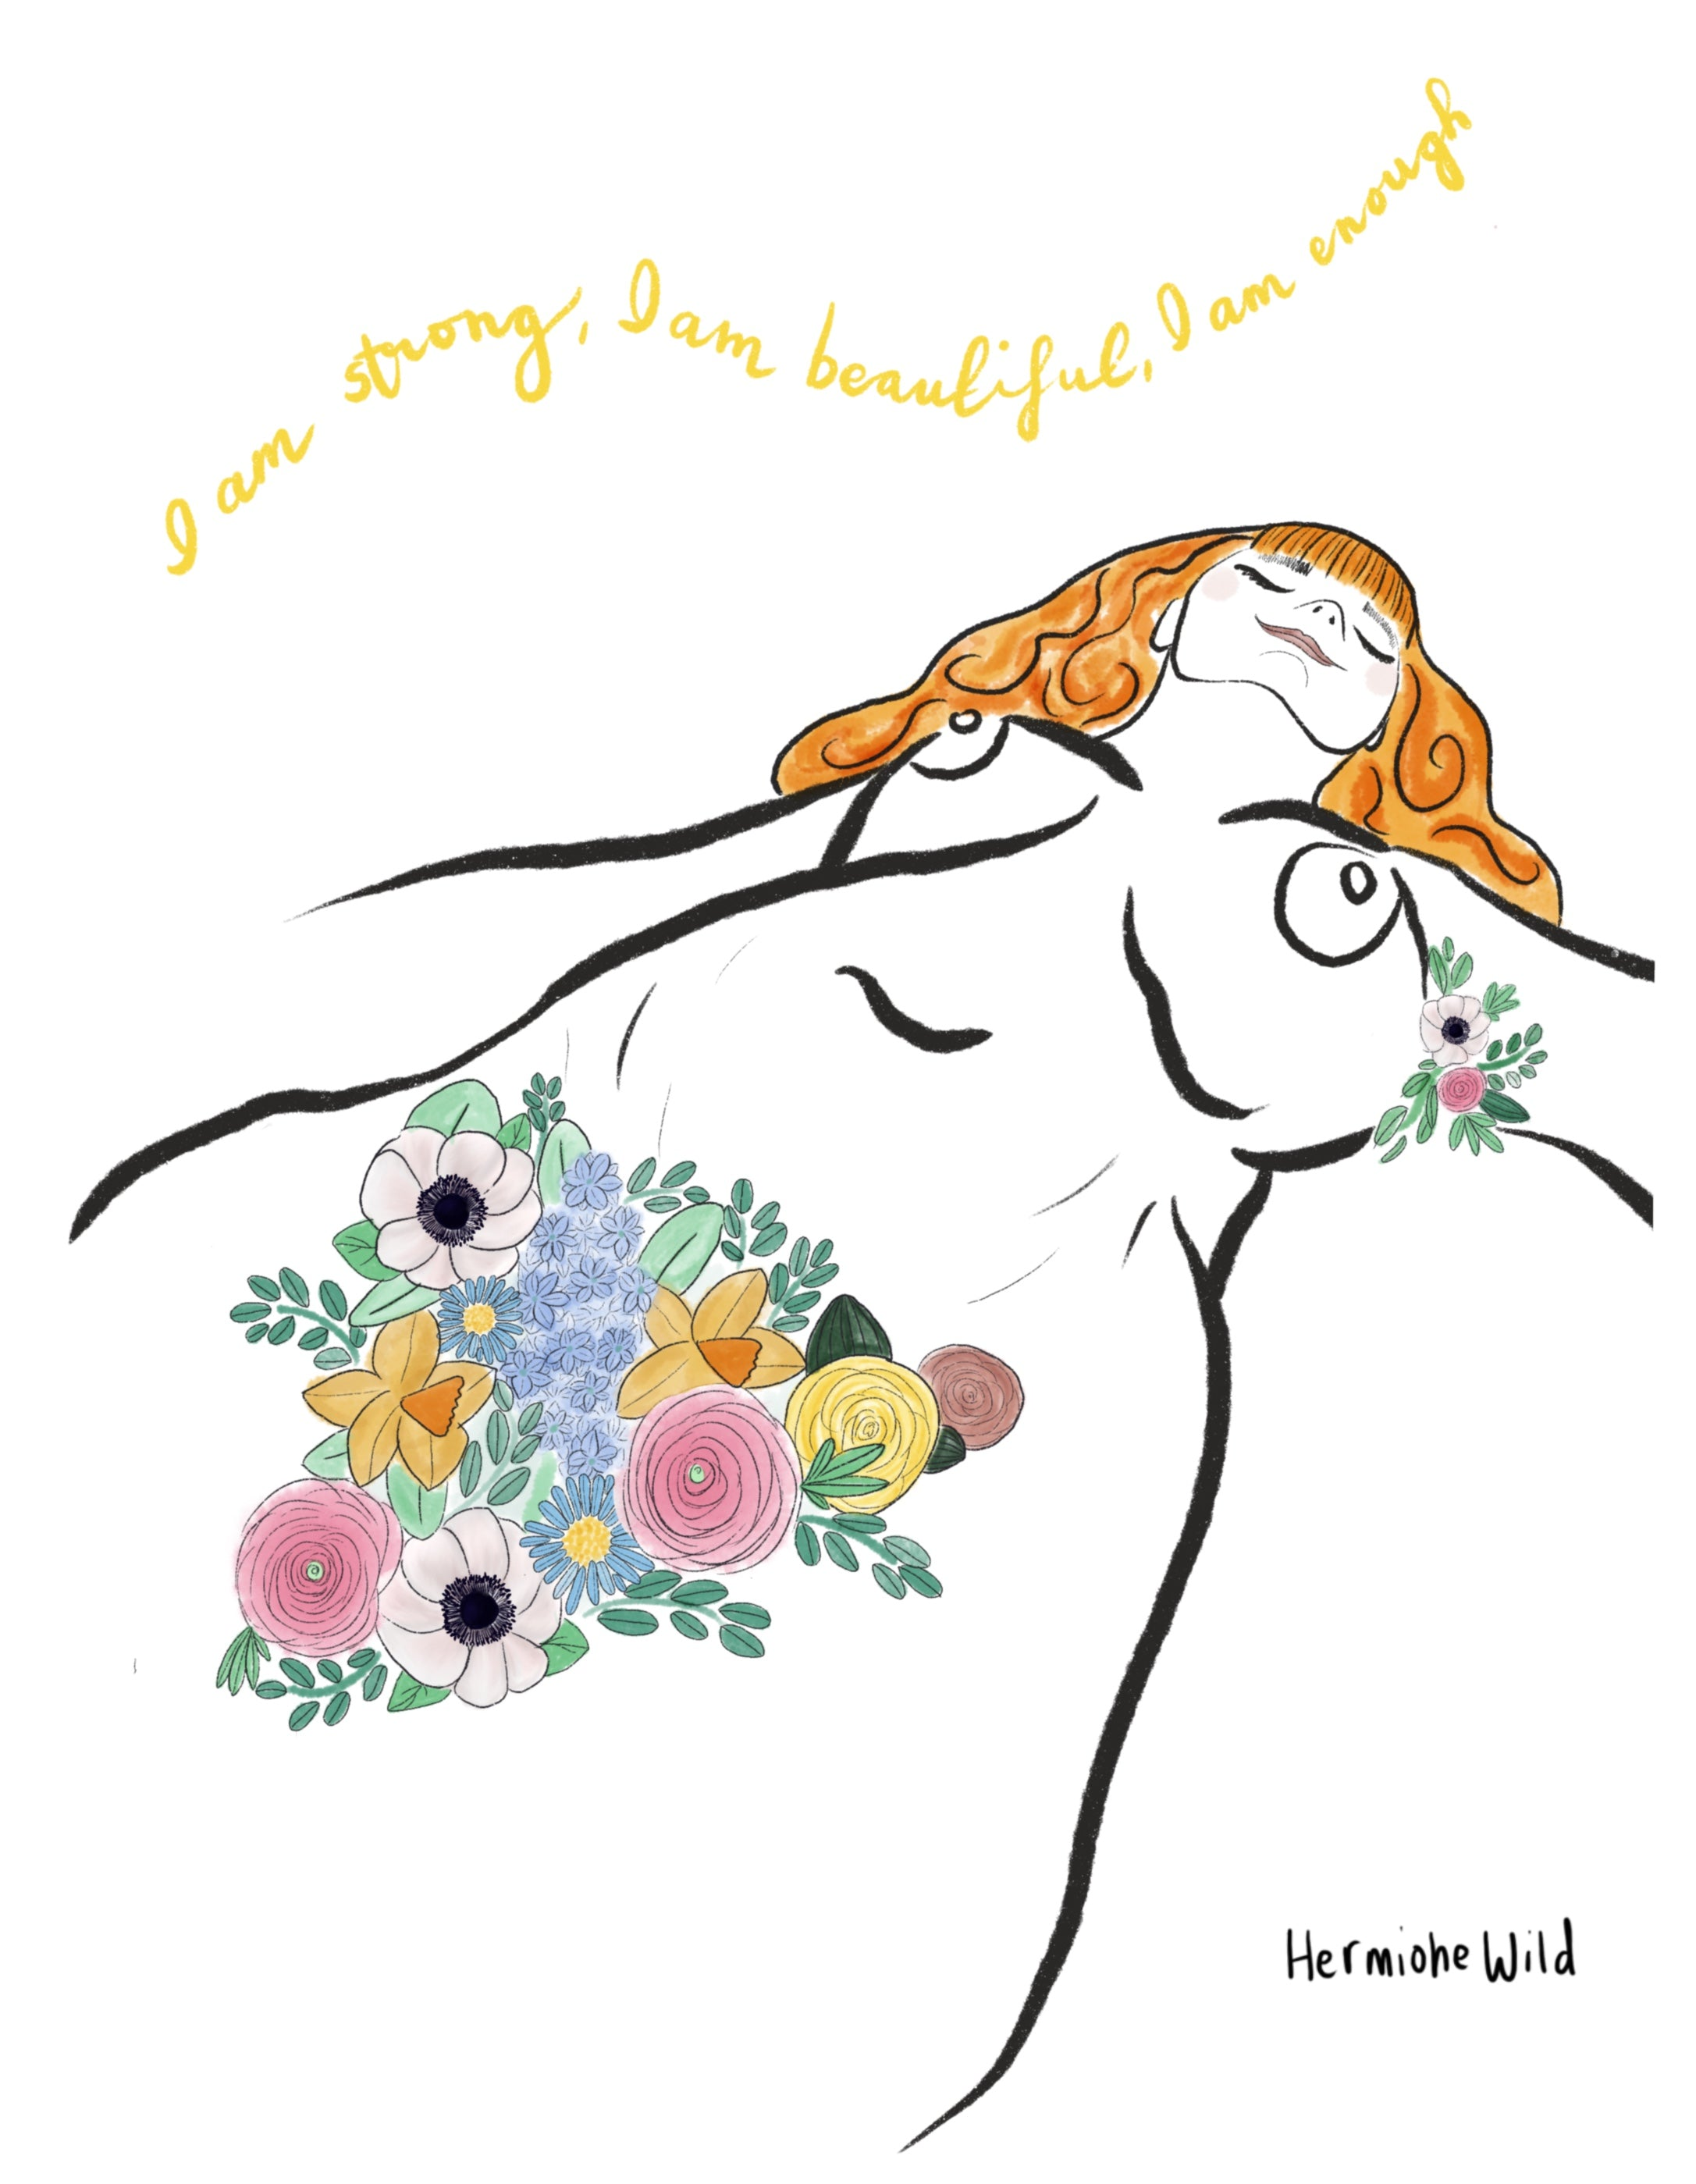 Red haired lady lying down with flowers in place of body hair. Quote reads 'I am strong, I am beautiful, I am enough'